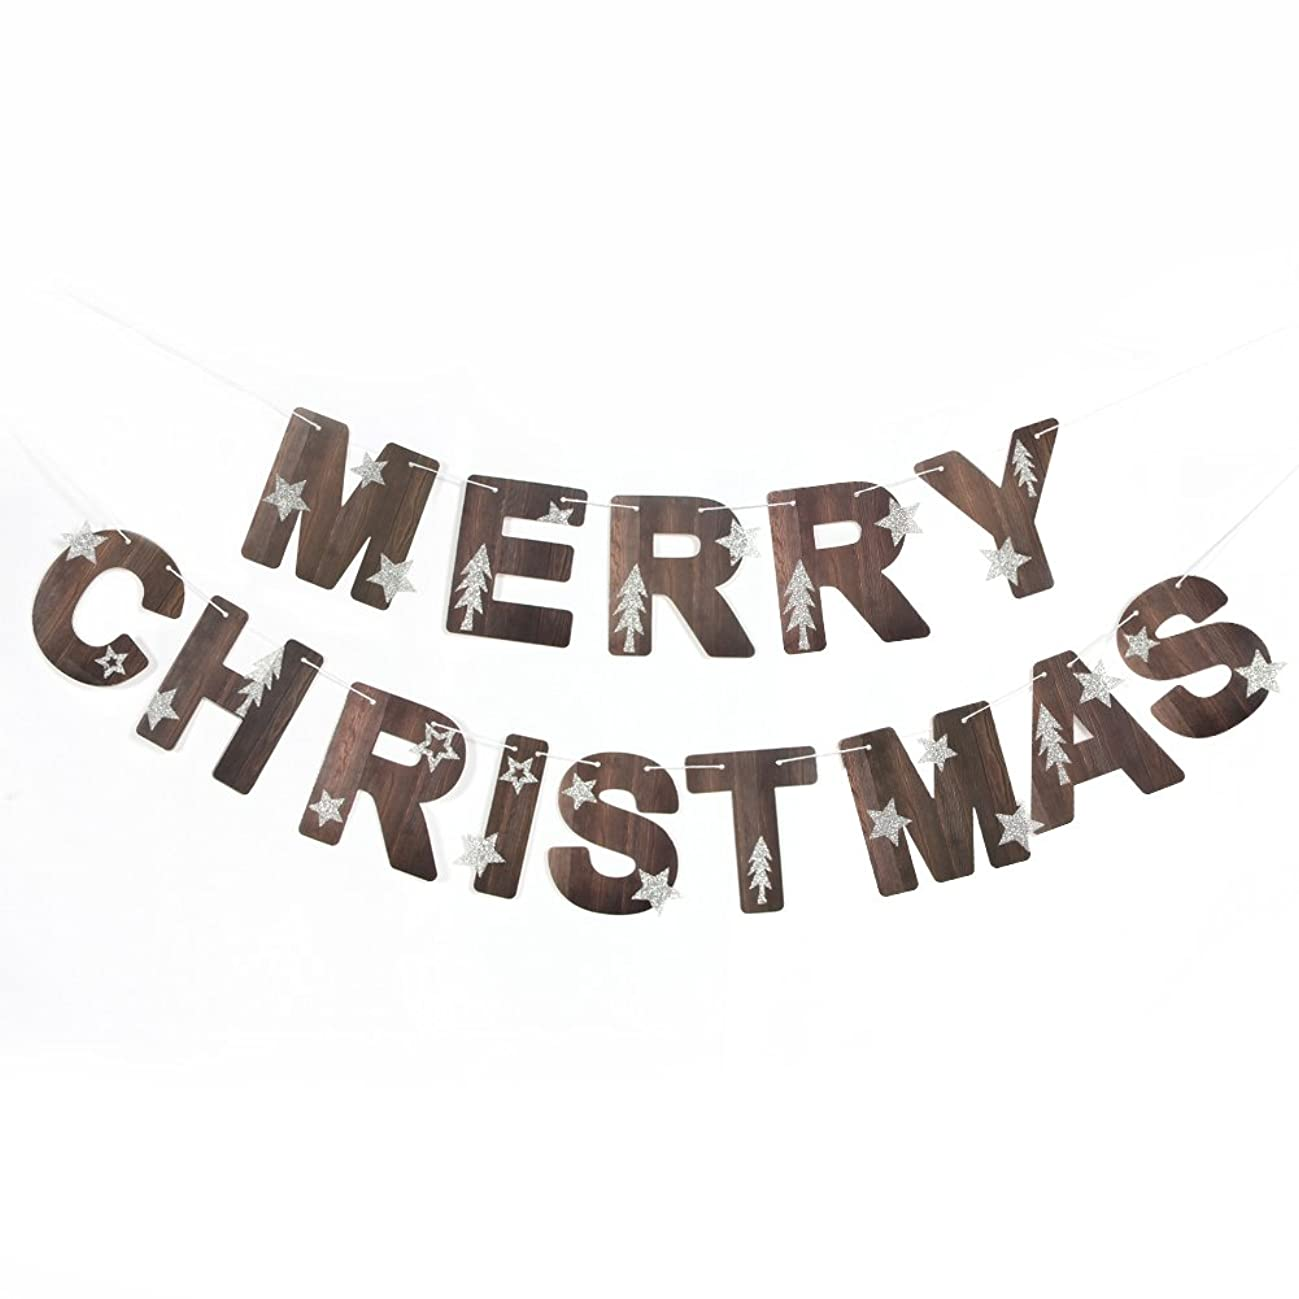 Merry Christmas Banner Glitter Stars Trees Holiday Garland for Christmas Decoration Party Props Nature Color SUNBEAUTY